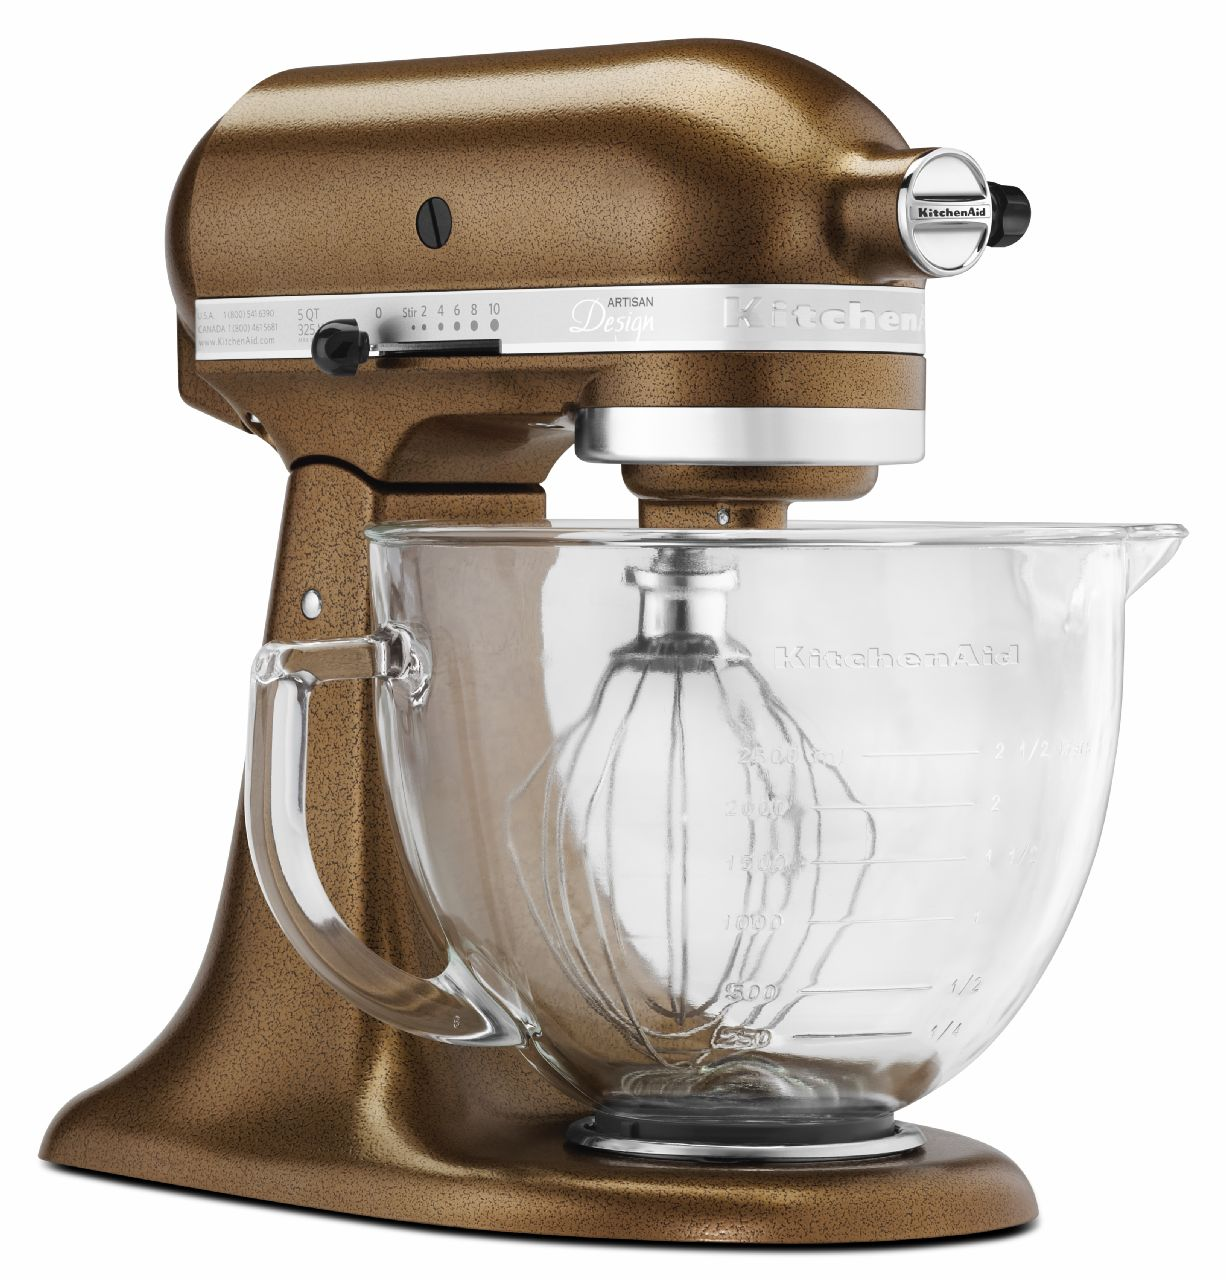 Kitchenaid Artisan Design Series 5 Quart Tilt Head Stand Mixer